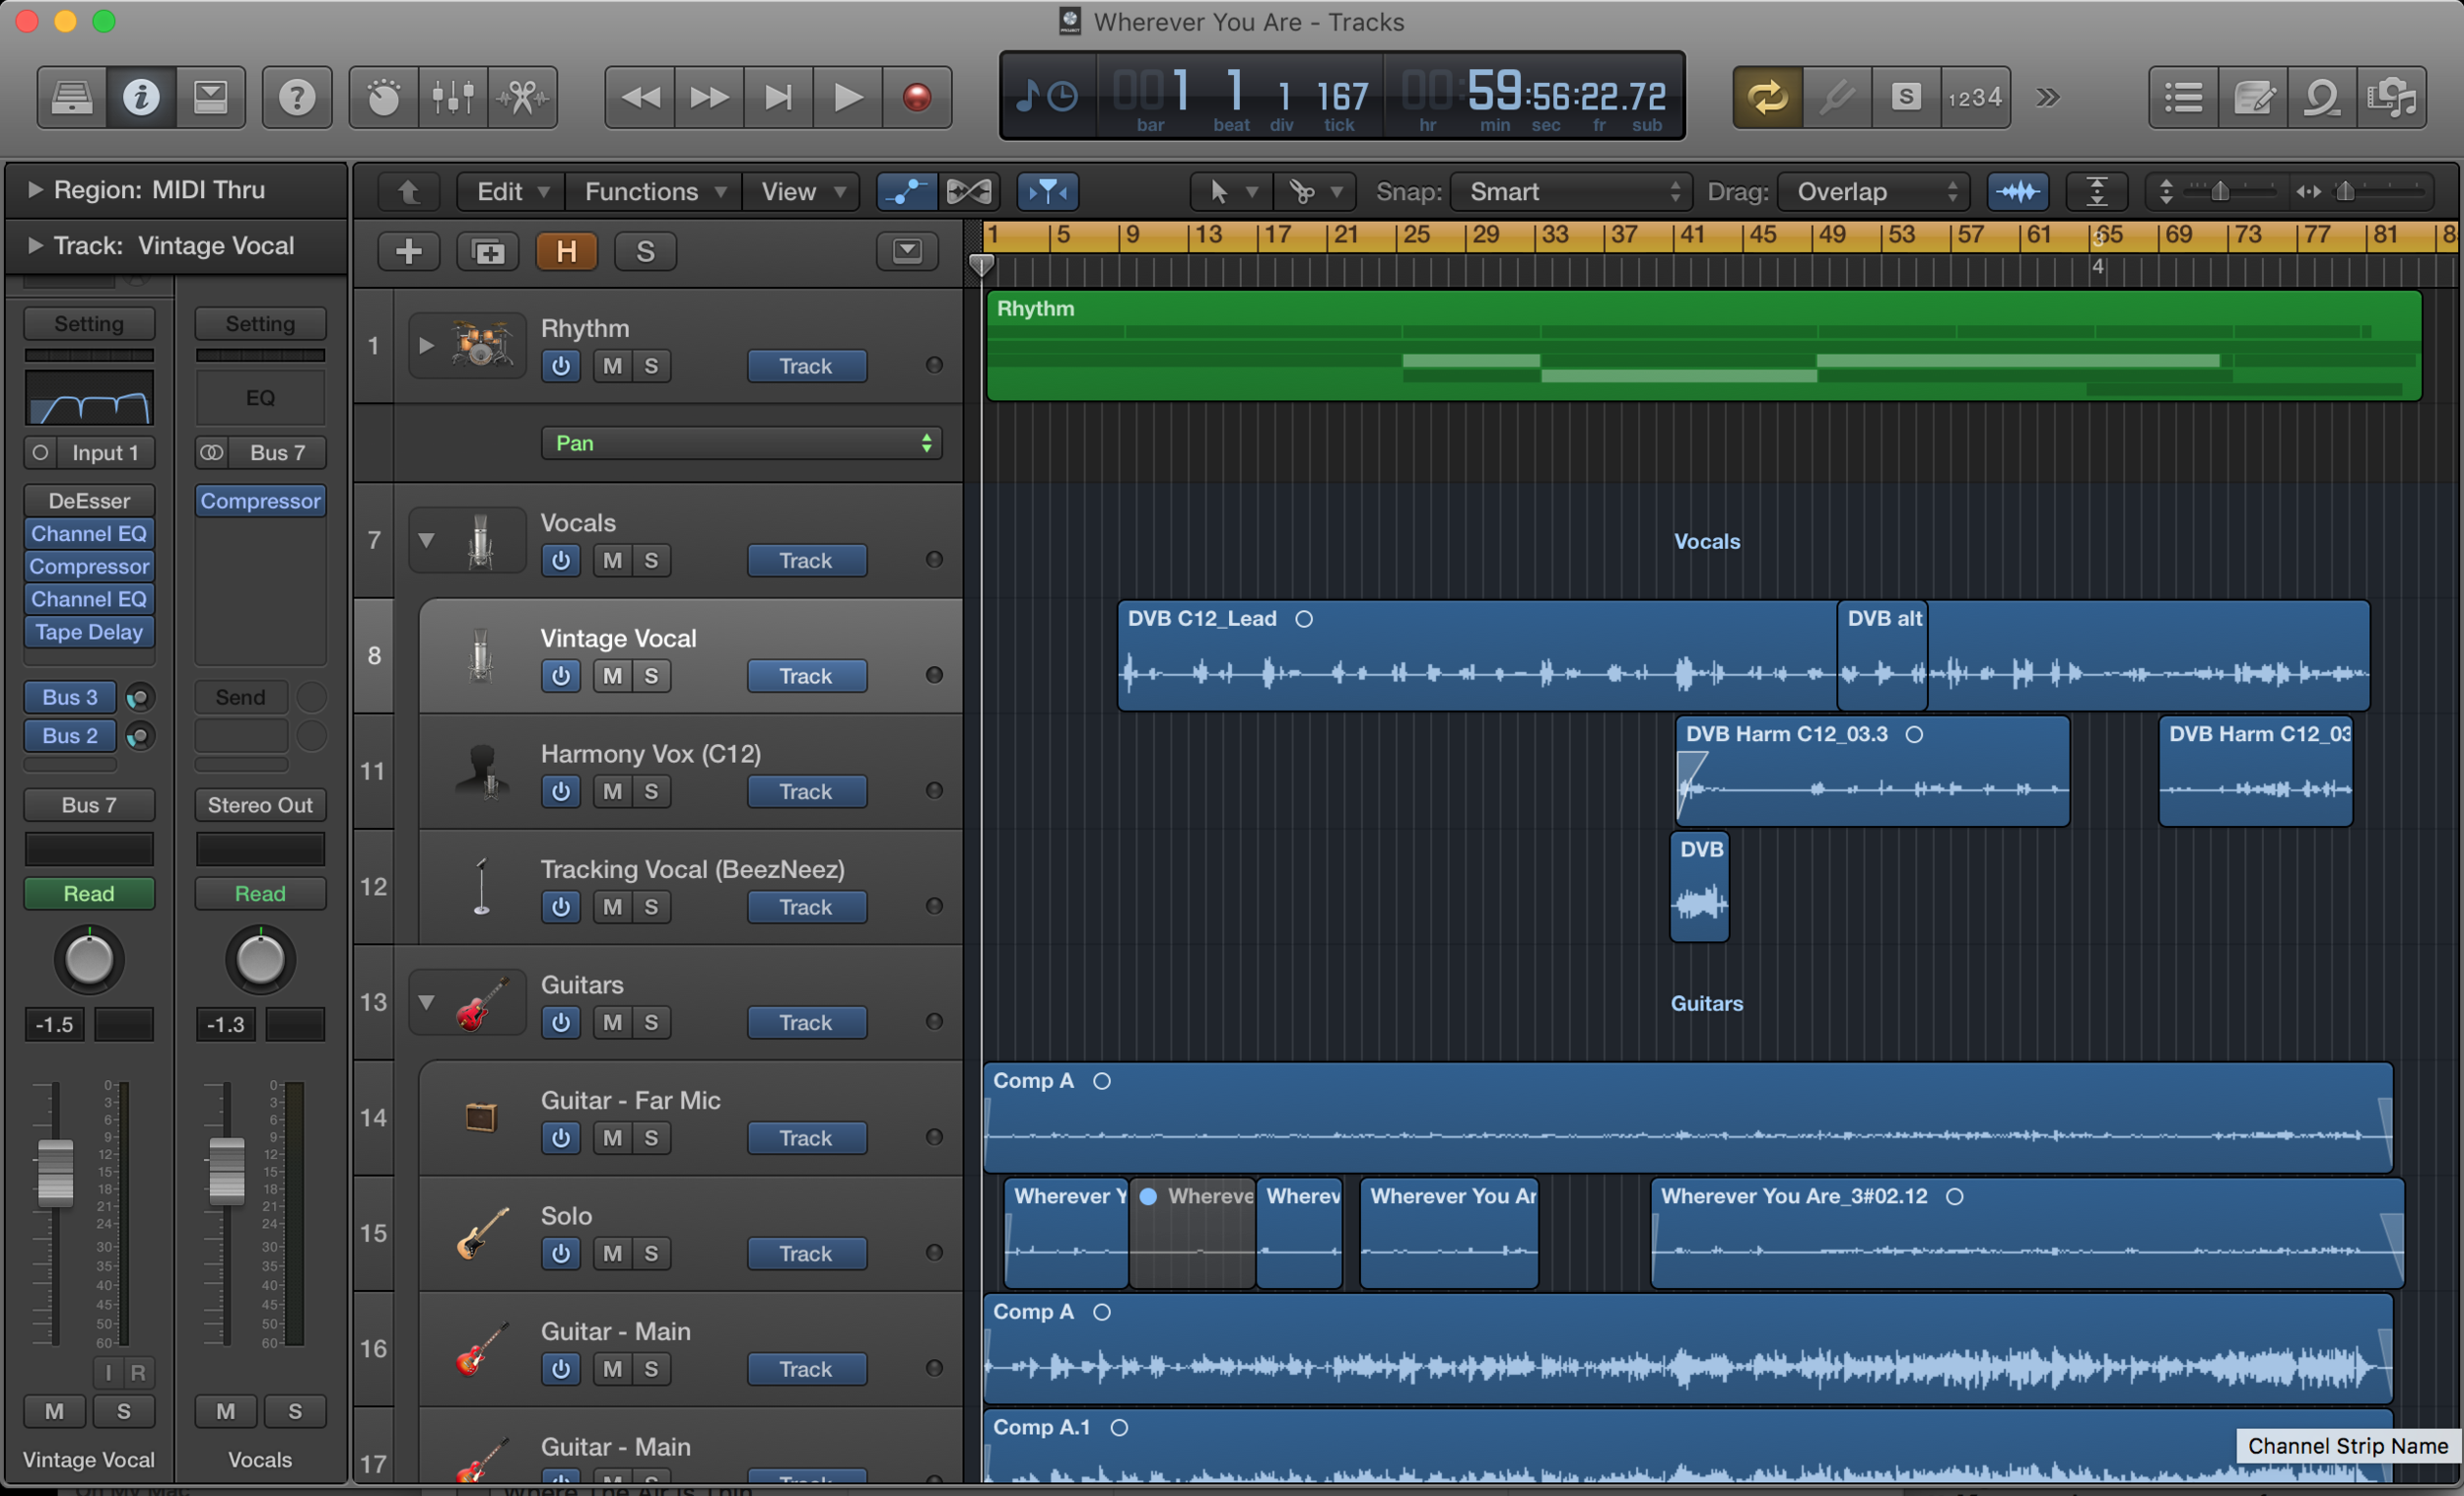 Here is a peek at what 'Wherever You Are' looks like in Logic Pro X.